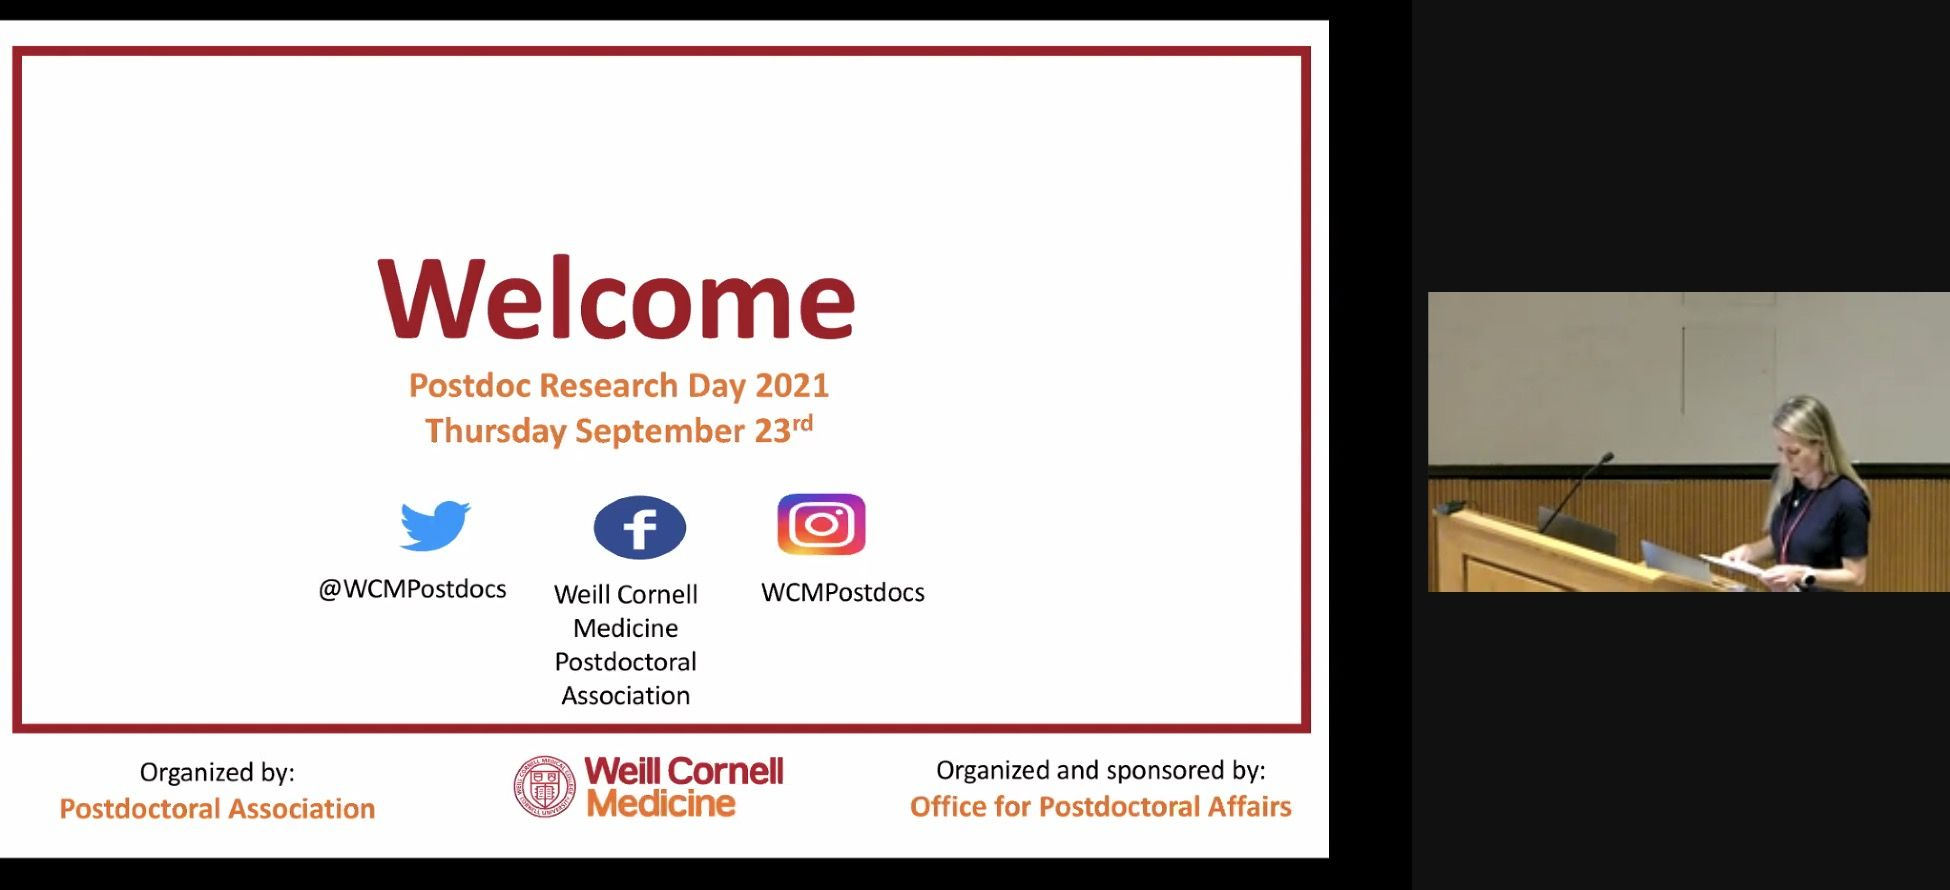 postdoctoral research day weill cornell